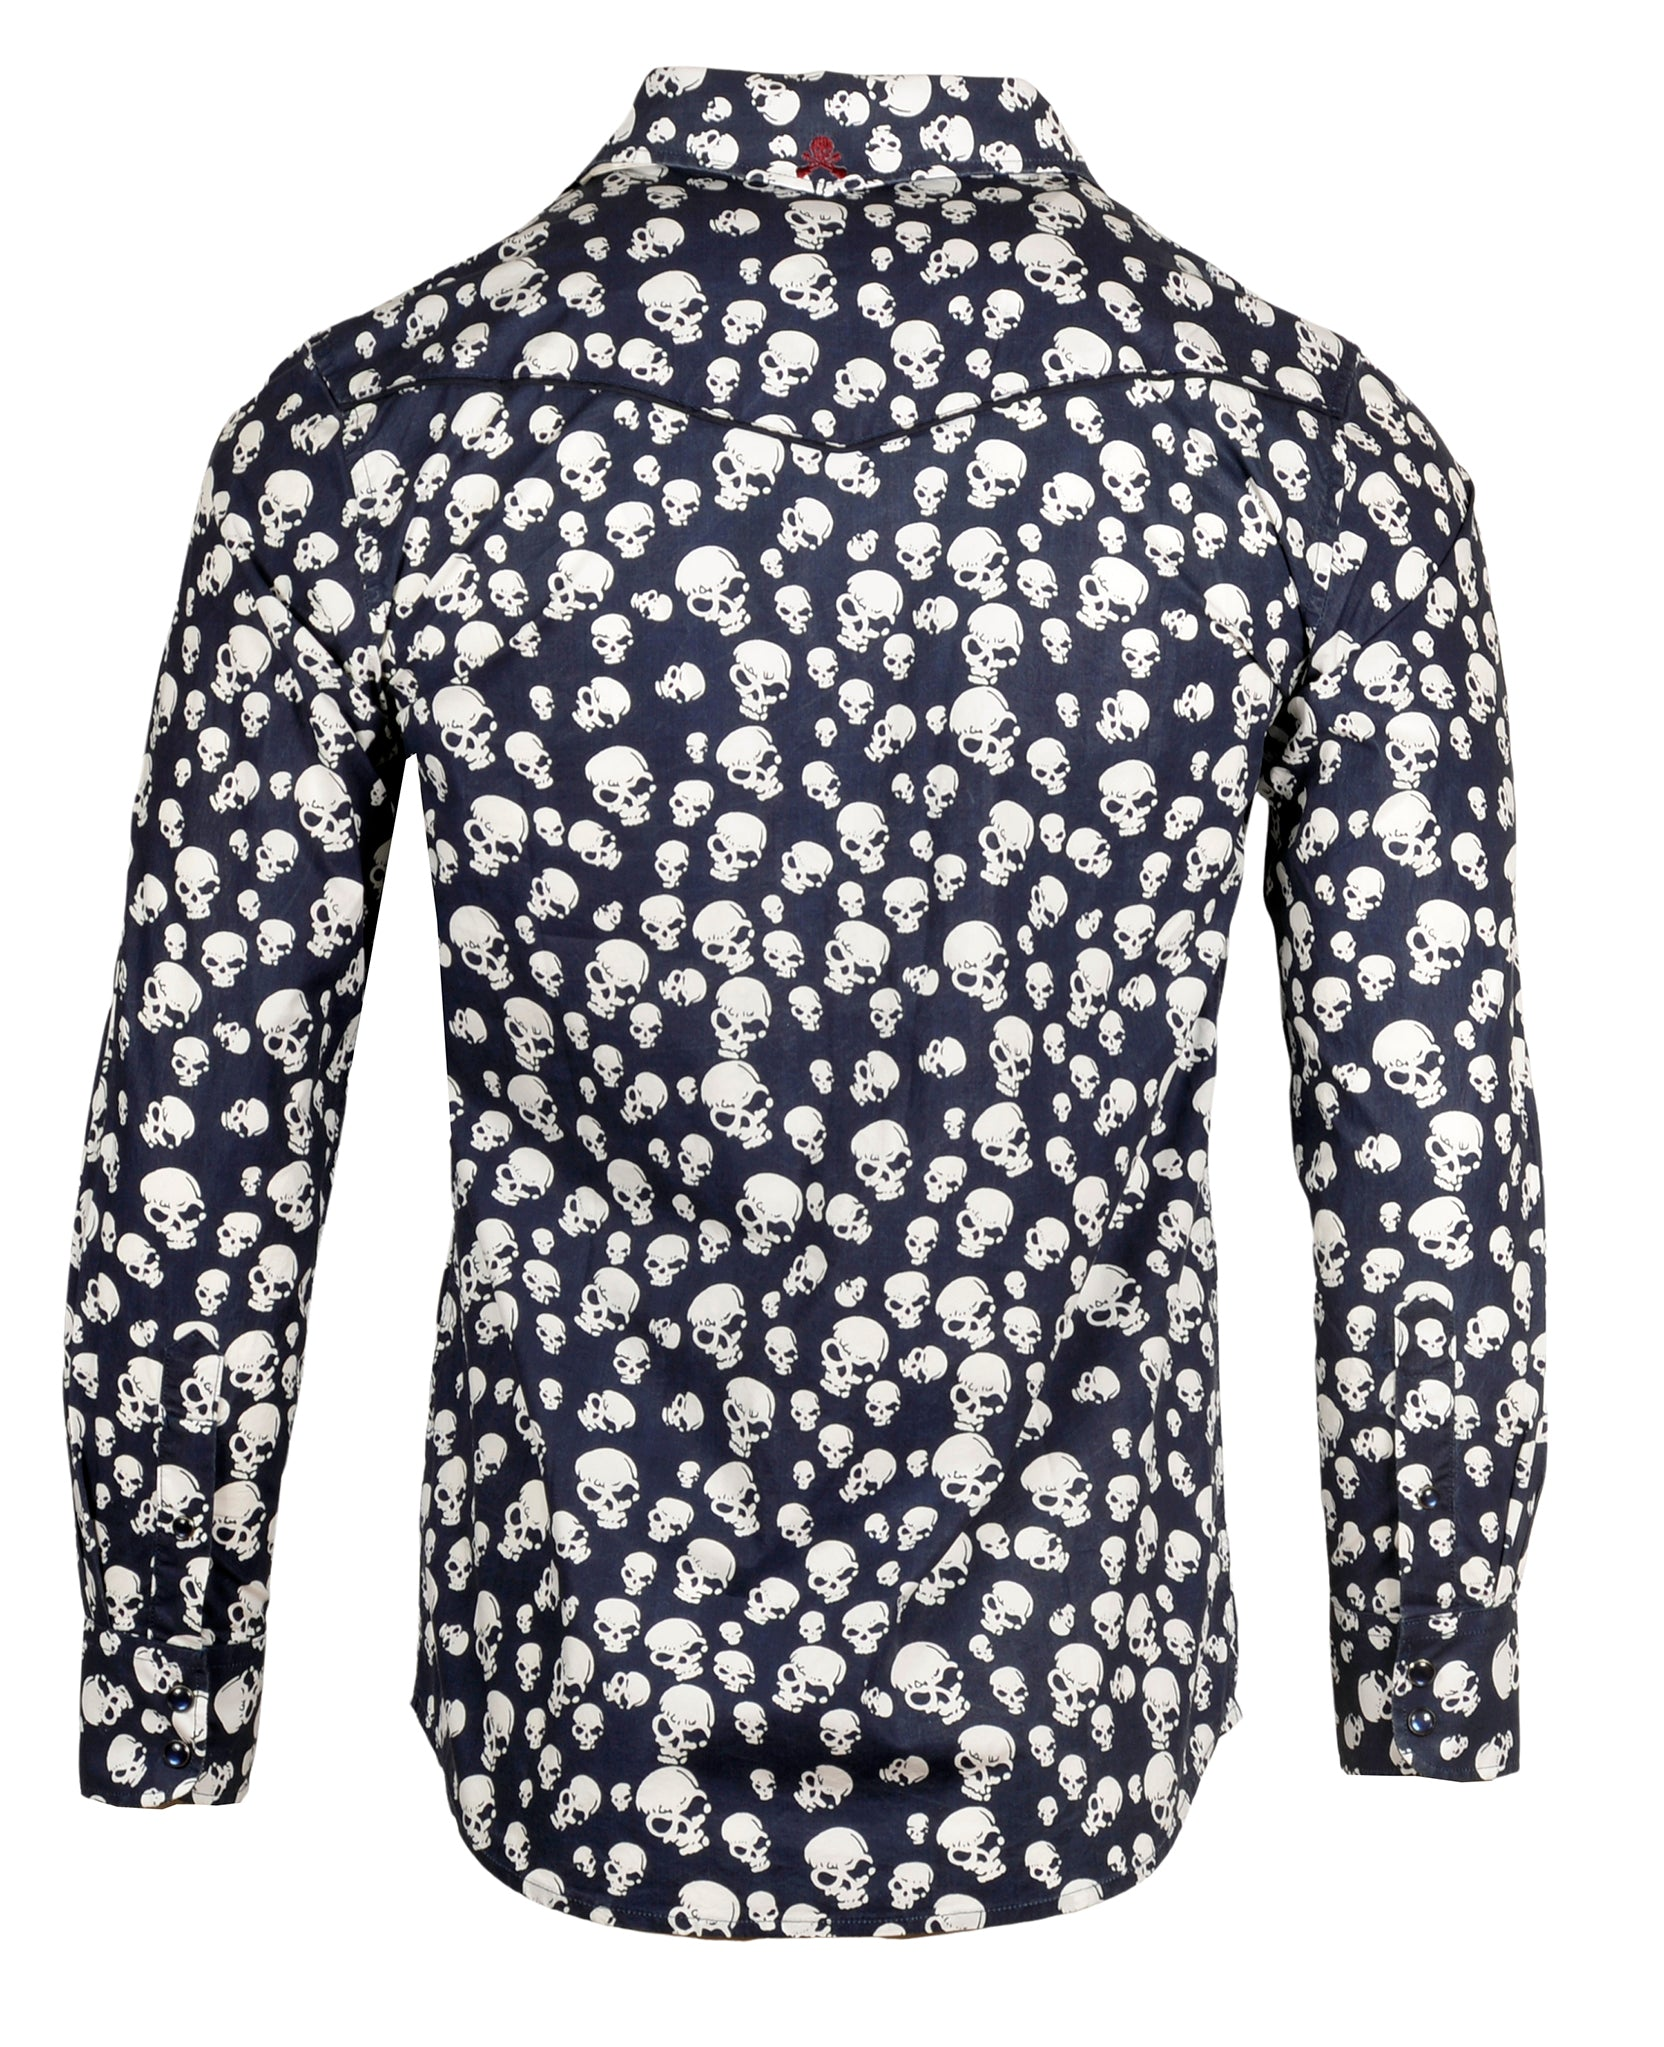 Men's Skull Design Fashion Button Up Shirt - Pompeii in Navy by Rock Roll n Soul2